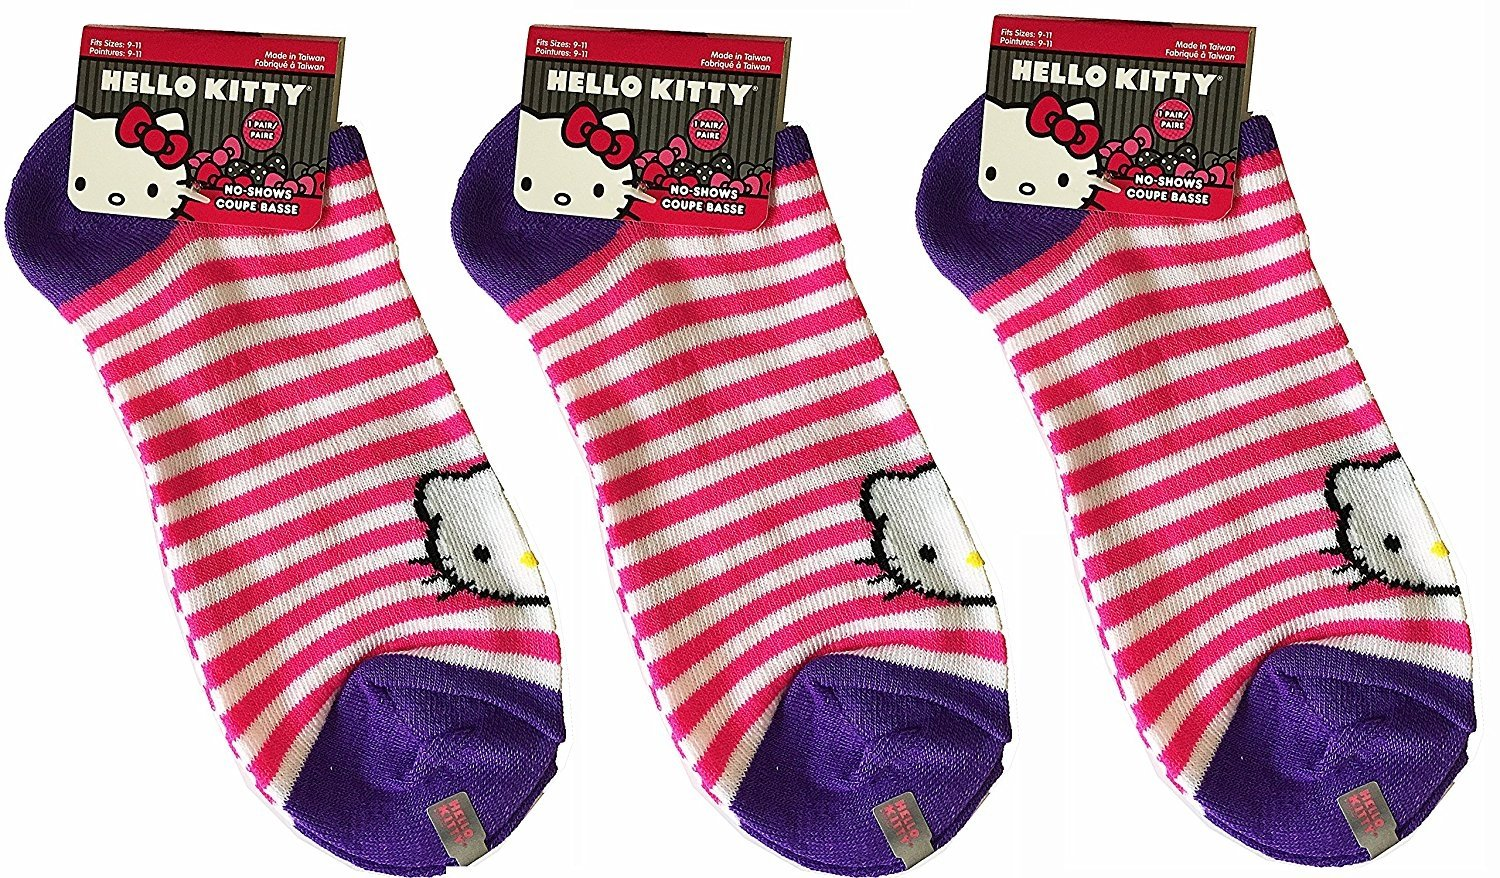 ed99b6407 [3-Pack] Sanrio Hello Kitty No-Shows Striped Ankle Sock, Sock Size 9-11 (Women's  Shoe Sz 5-10)